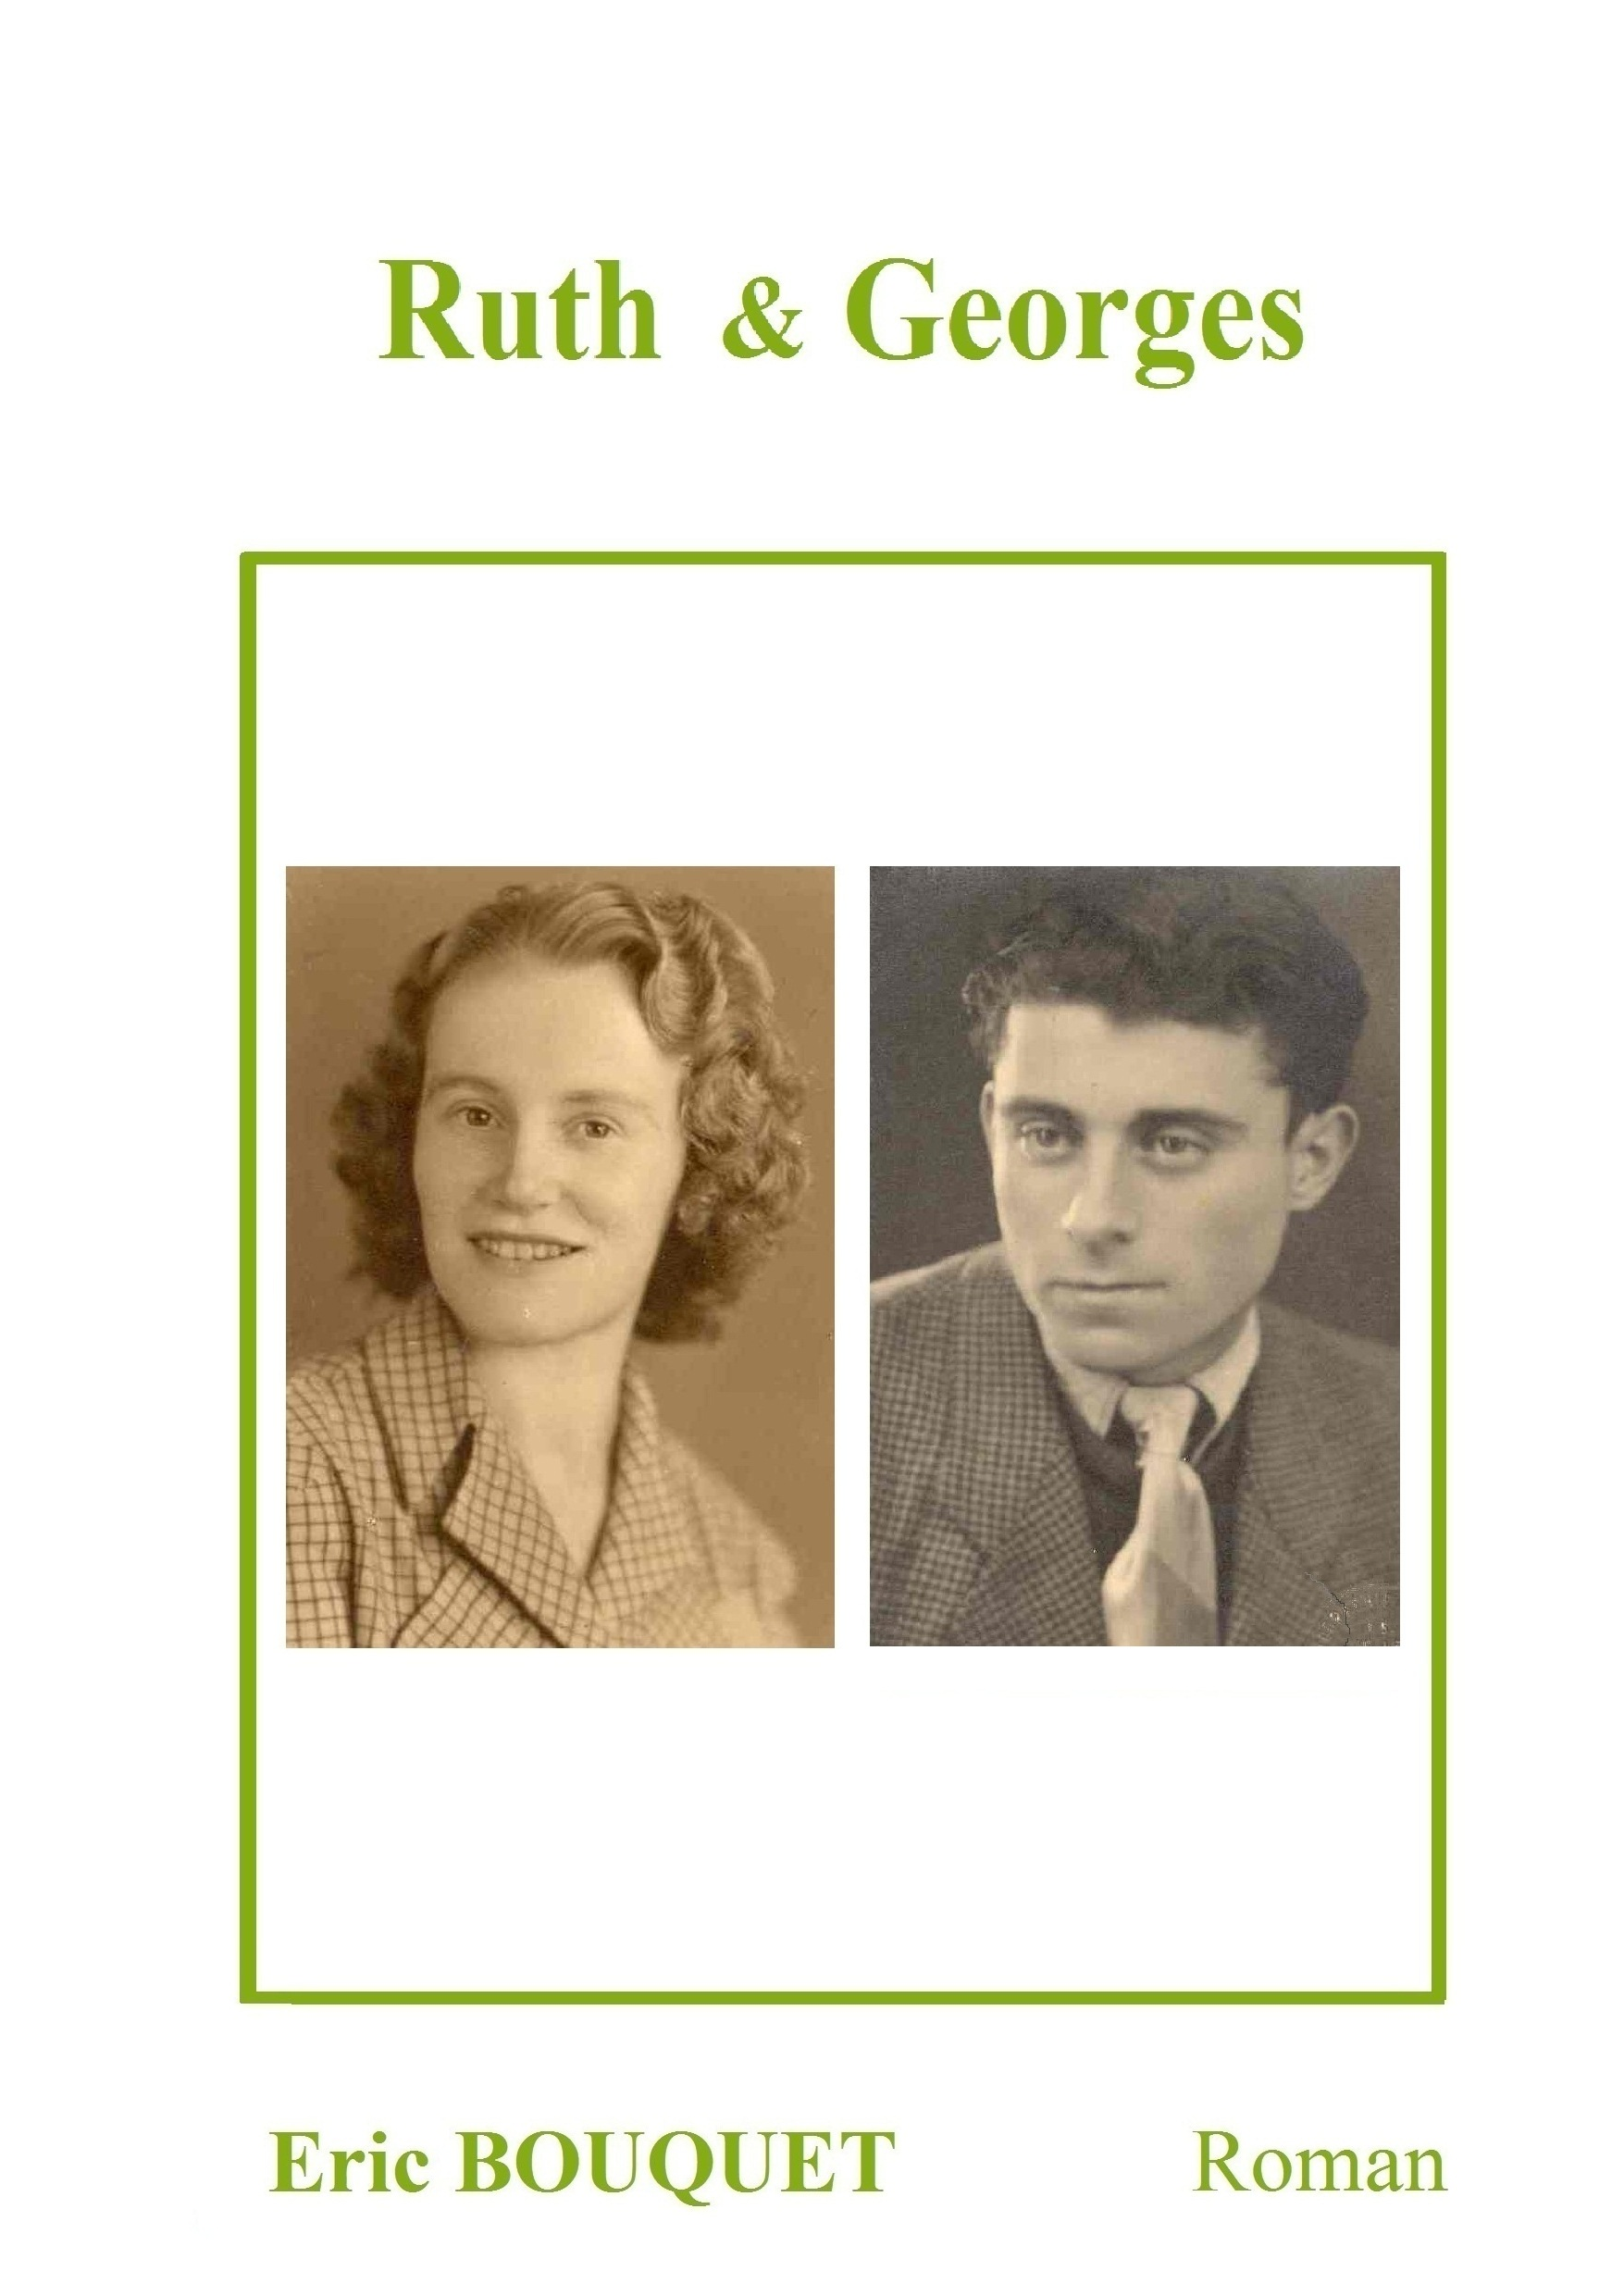 Ruth&Georges